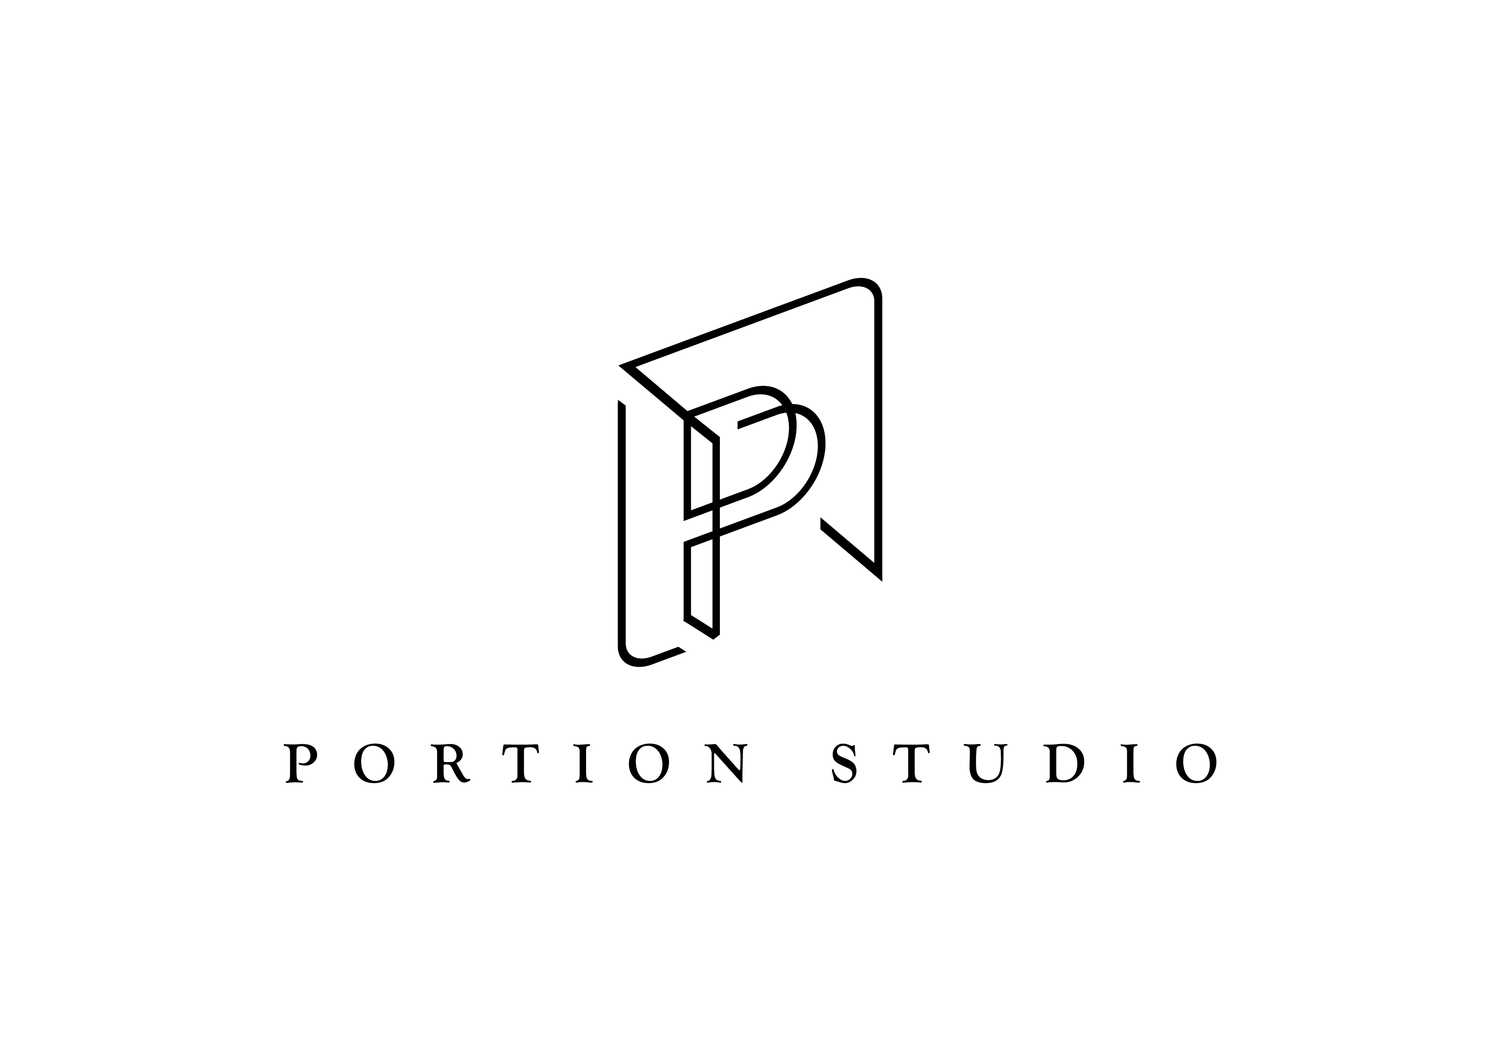 Portion Studio